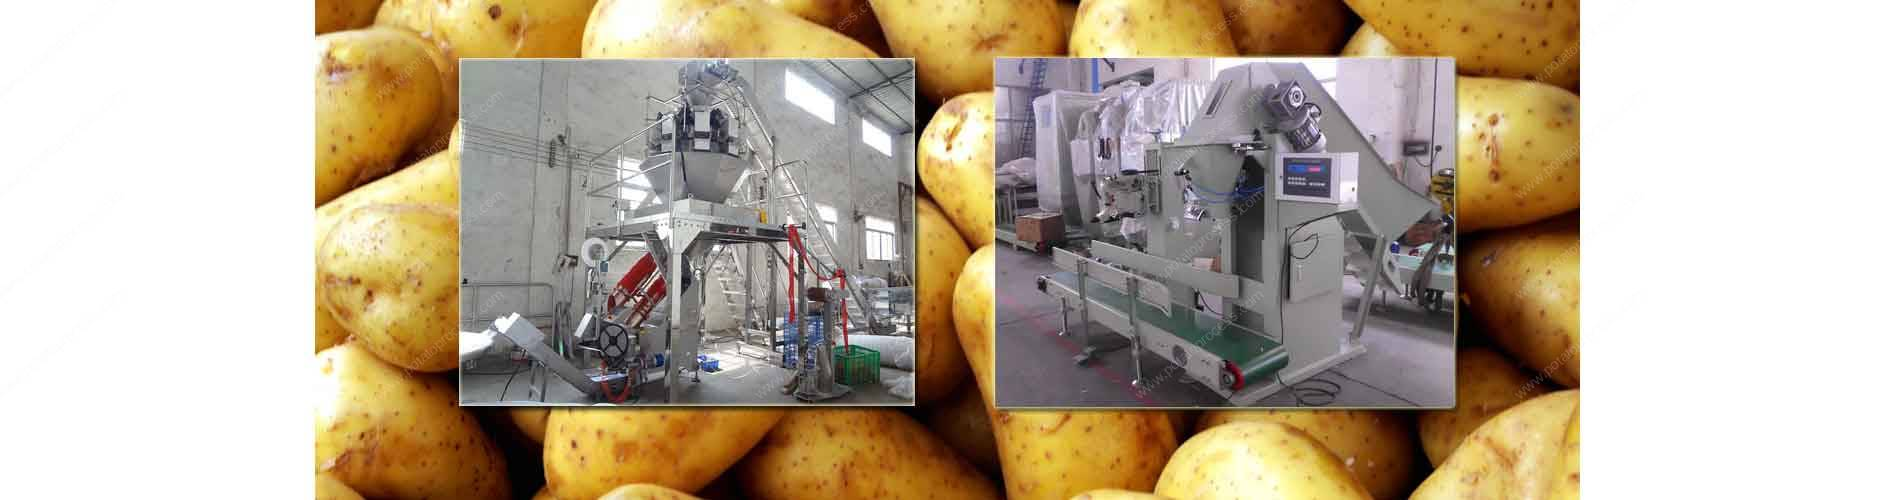 Potato Mesh Bag Clipping Packing Machine